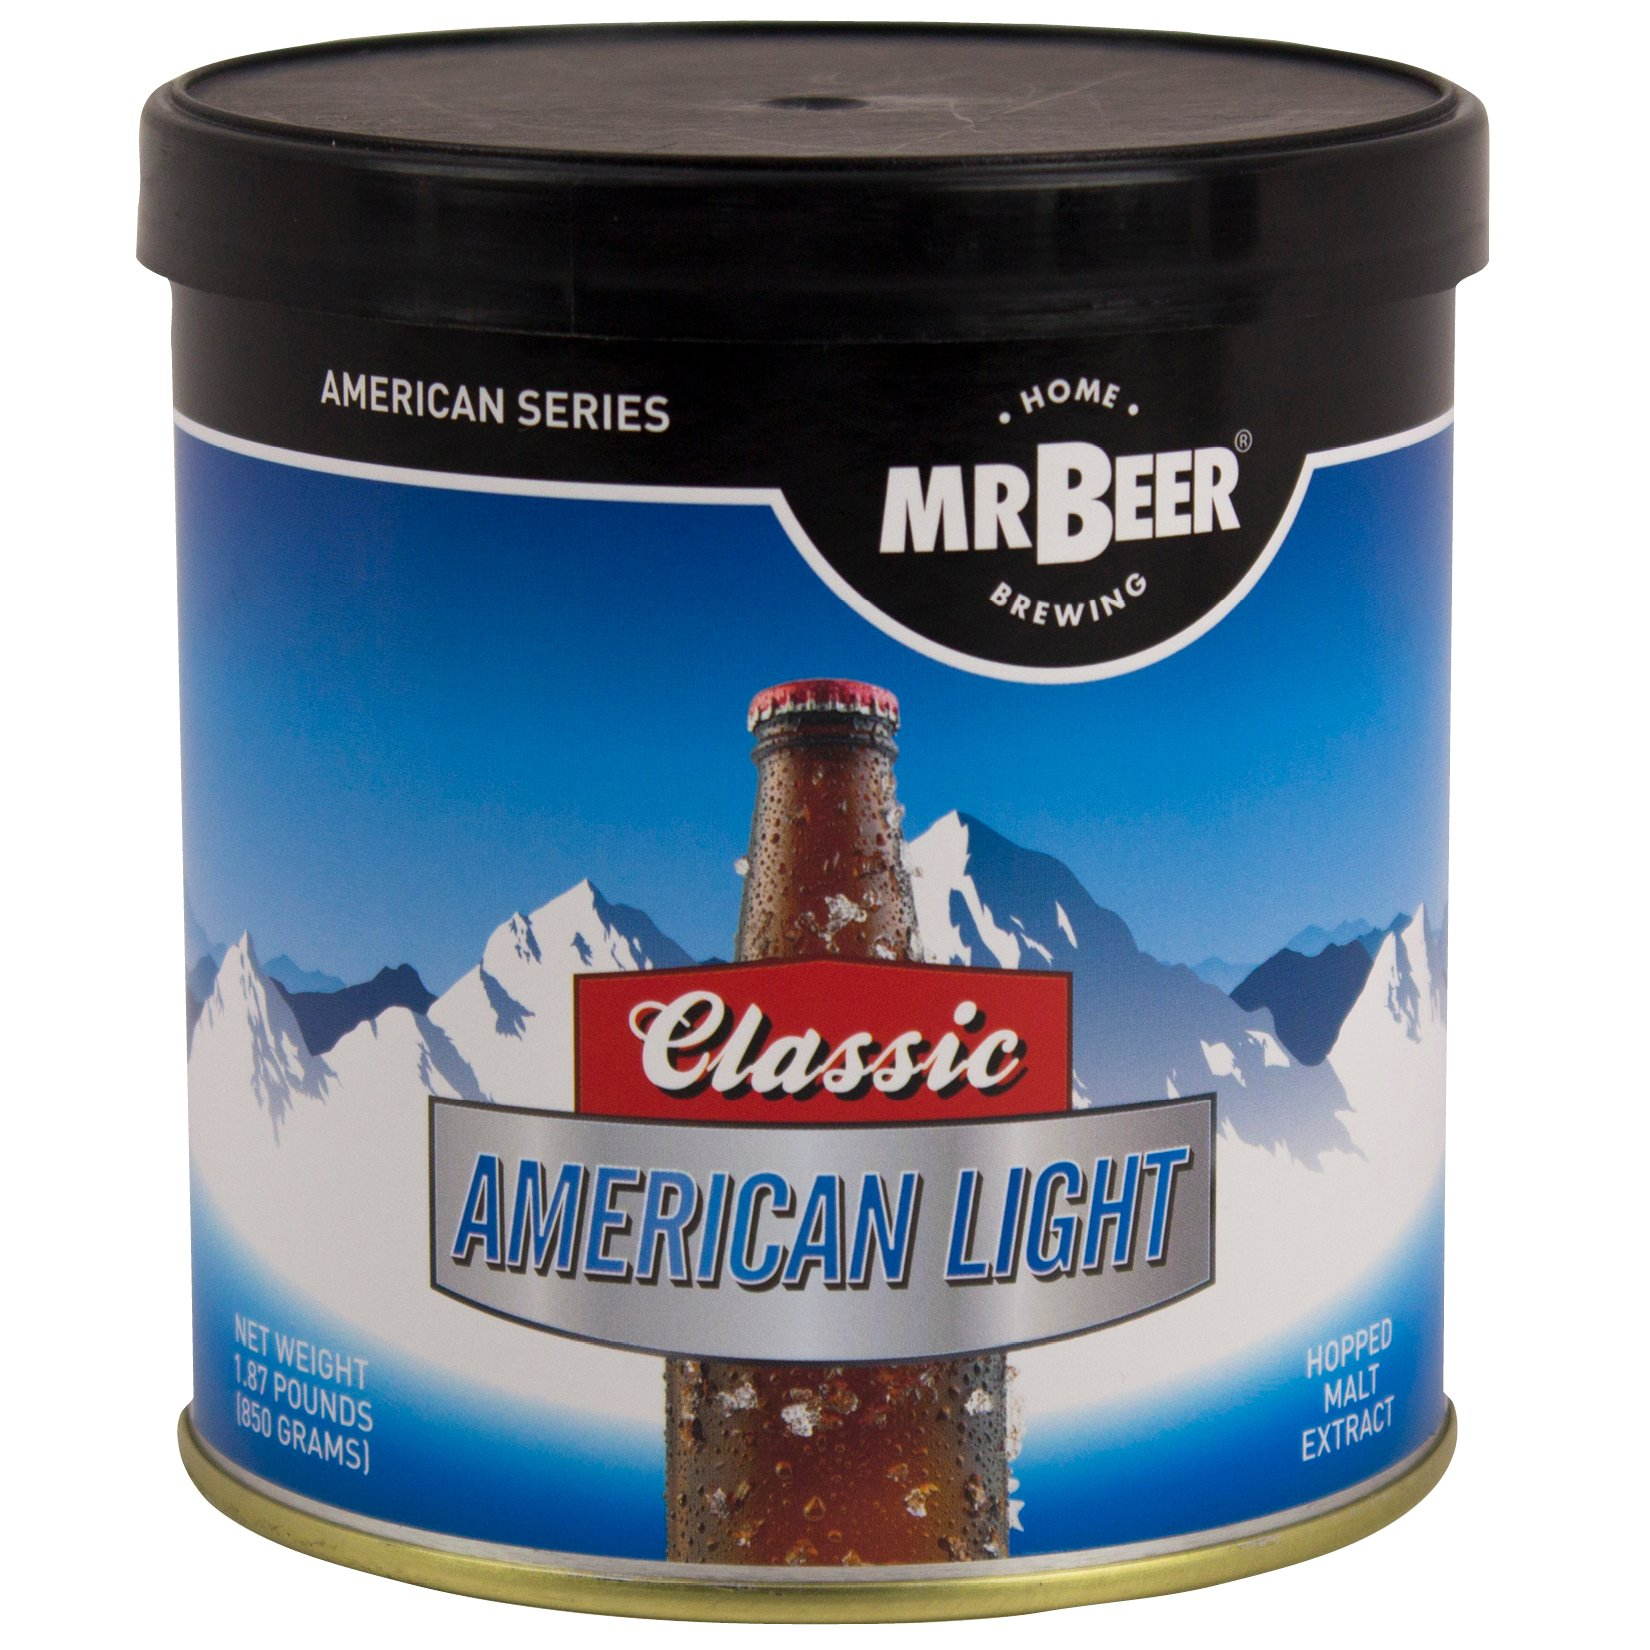 Mr. Beer Classic American Light 2 Gallon Homebrewing Craft Beer Making Refill Kit with Sanitizer, Yeast and All Grain Brewing Extract by Mr. Beer (Image #1)